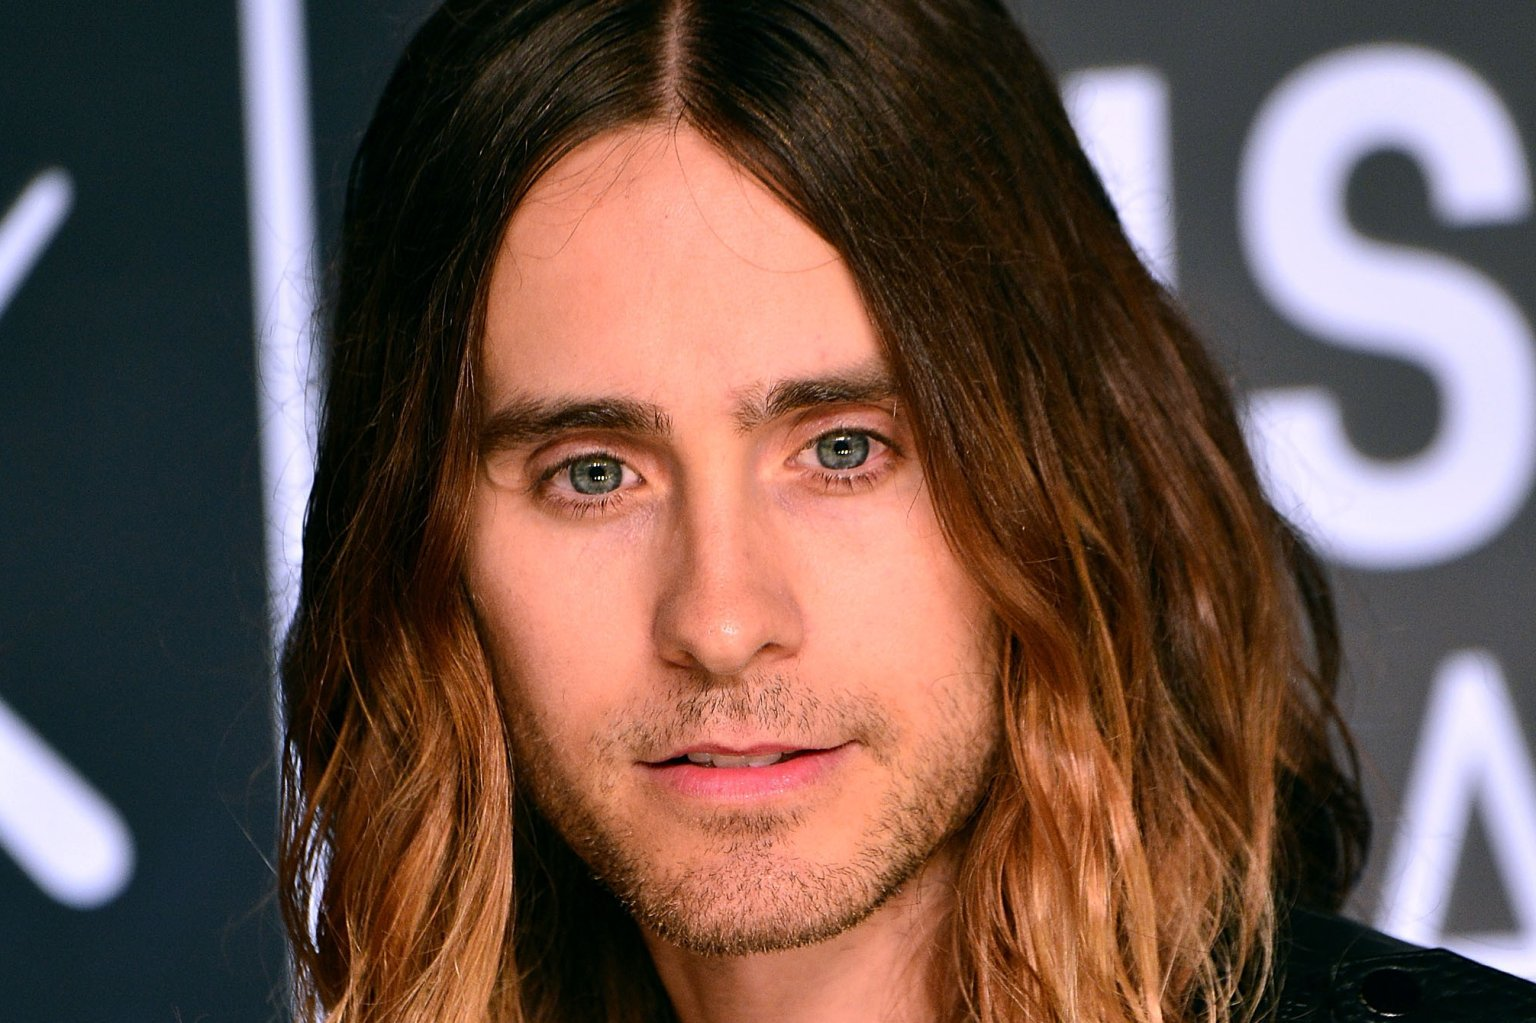 jared leto oscarjared leto 2016, jared leto instagram, jared leto 2017, jared leto vk, jared leto gucci, jared leto wiki, jared leto height, jared leto films, jared leto рост, jared leto fight club, jared leto young, jared leto tumblr, jared leto quotes, jared leto oscar, jared leto hurricane, jared leto wikipedia, jared leto личная жизнь, jared leto песни, jared leto movies, jared leto carrera